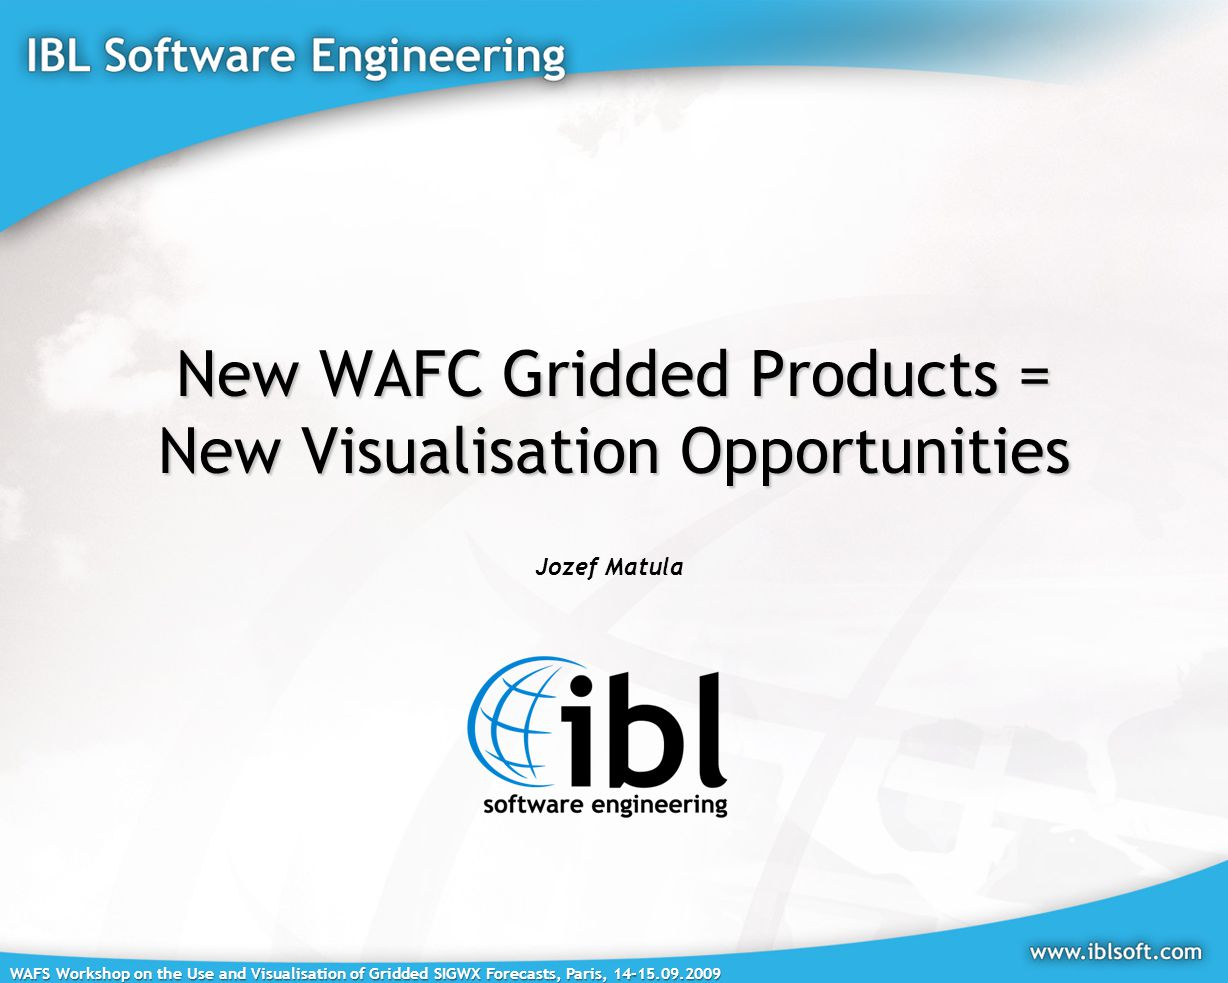 WAFS Workshop on the Use and Visualisation of Gridded SIGWX Forecasts, Paris, 14-15.09.2009 New WAFC Gridded Products = New Visualisation Opportunities Jozef Matula